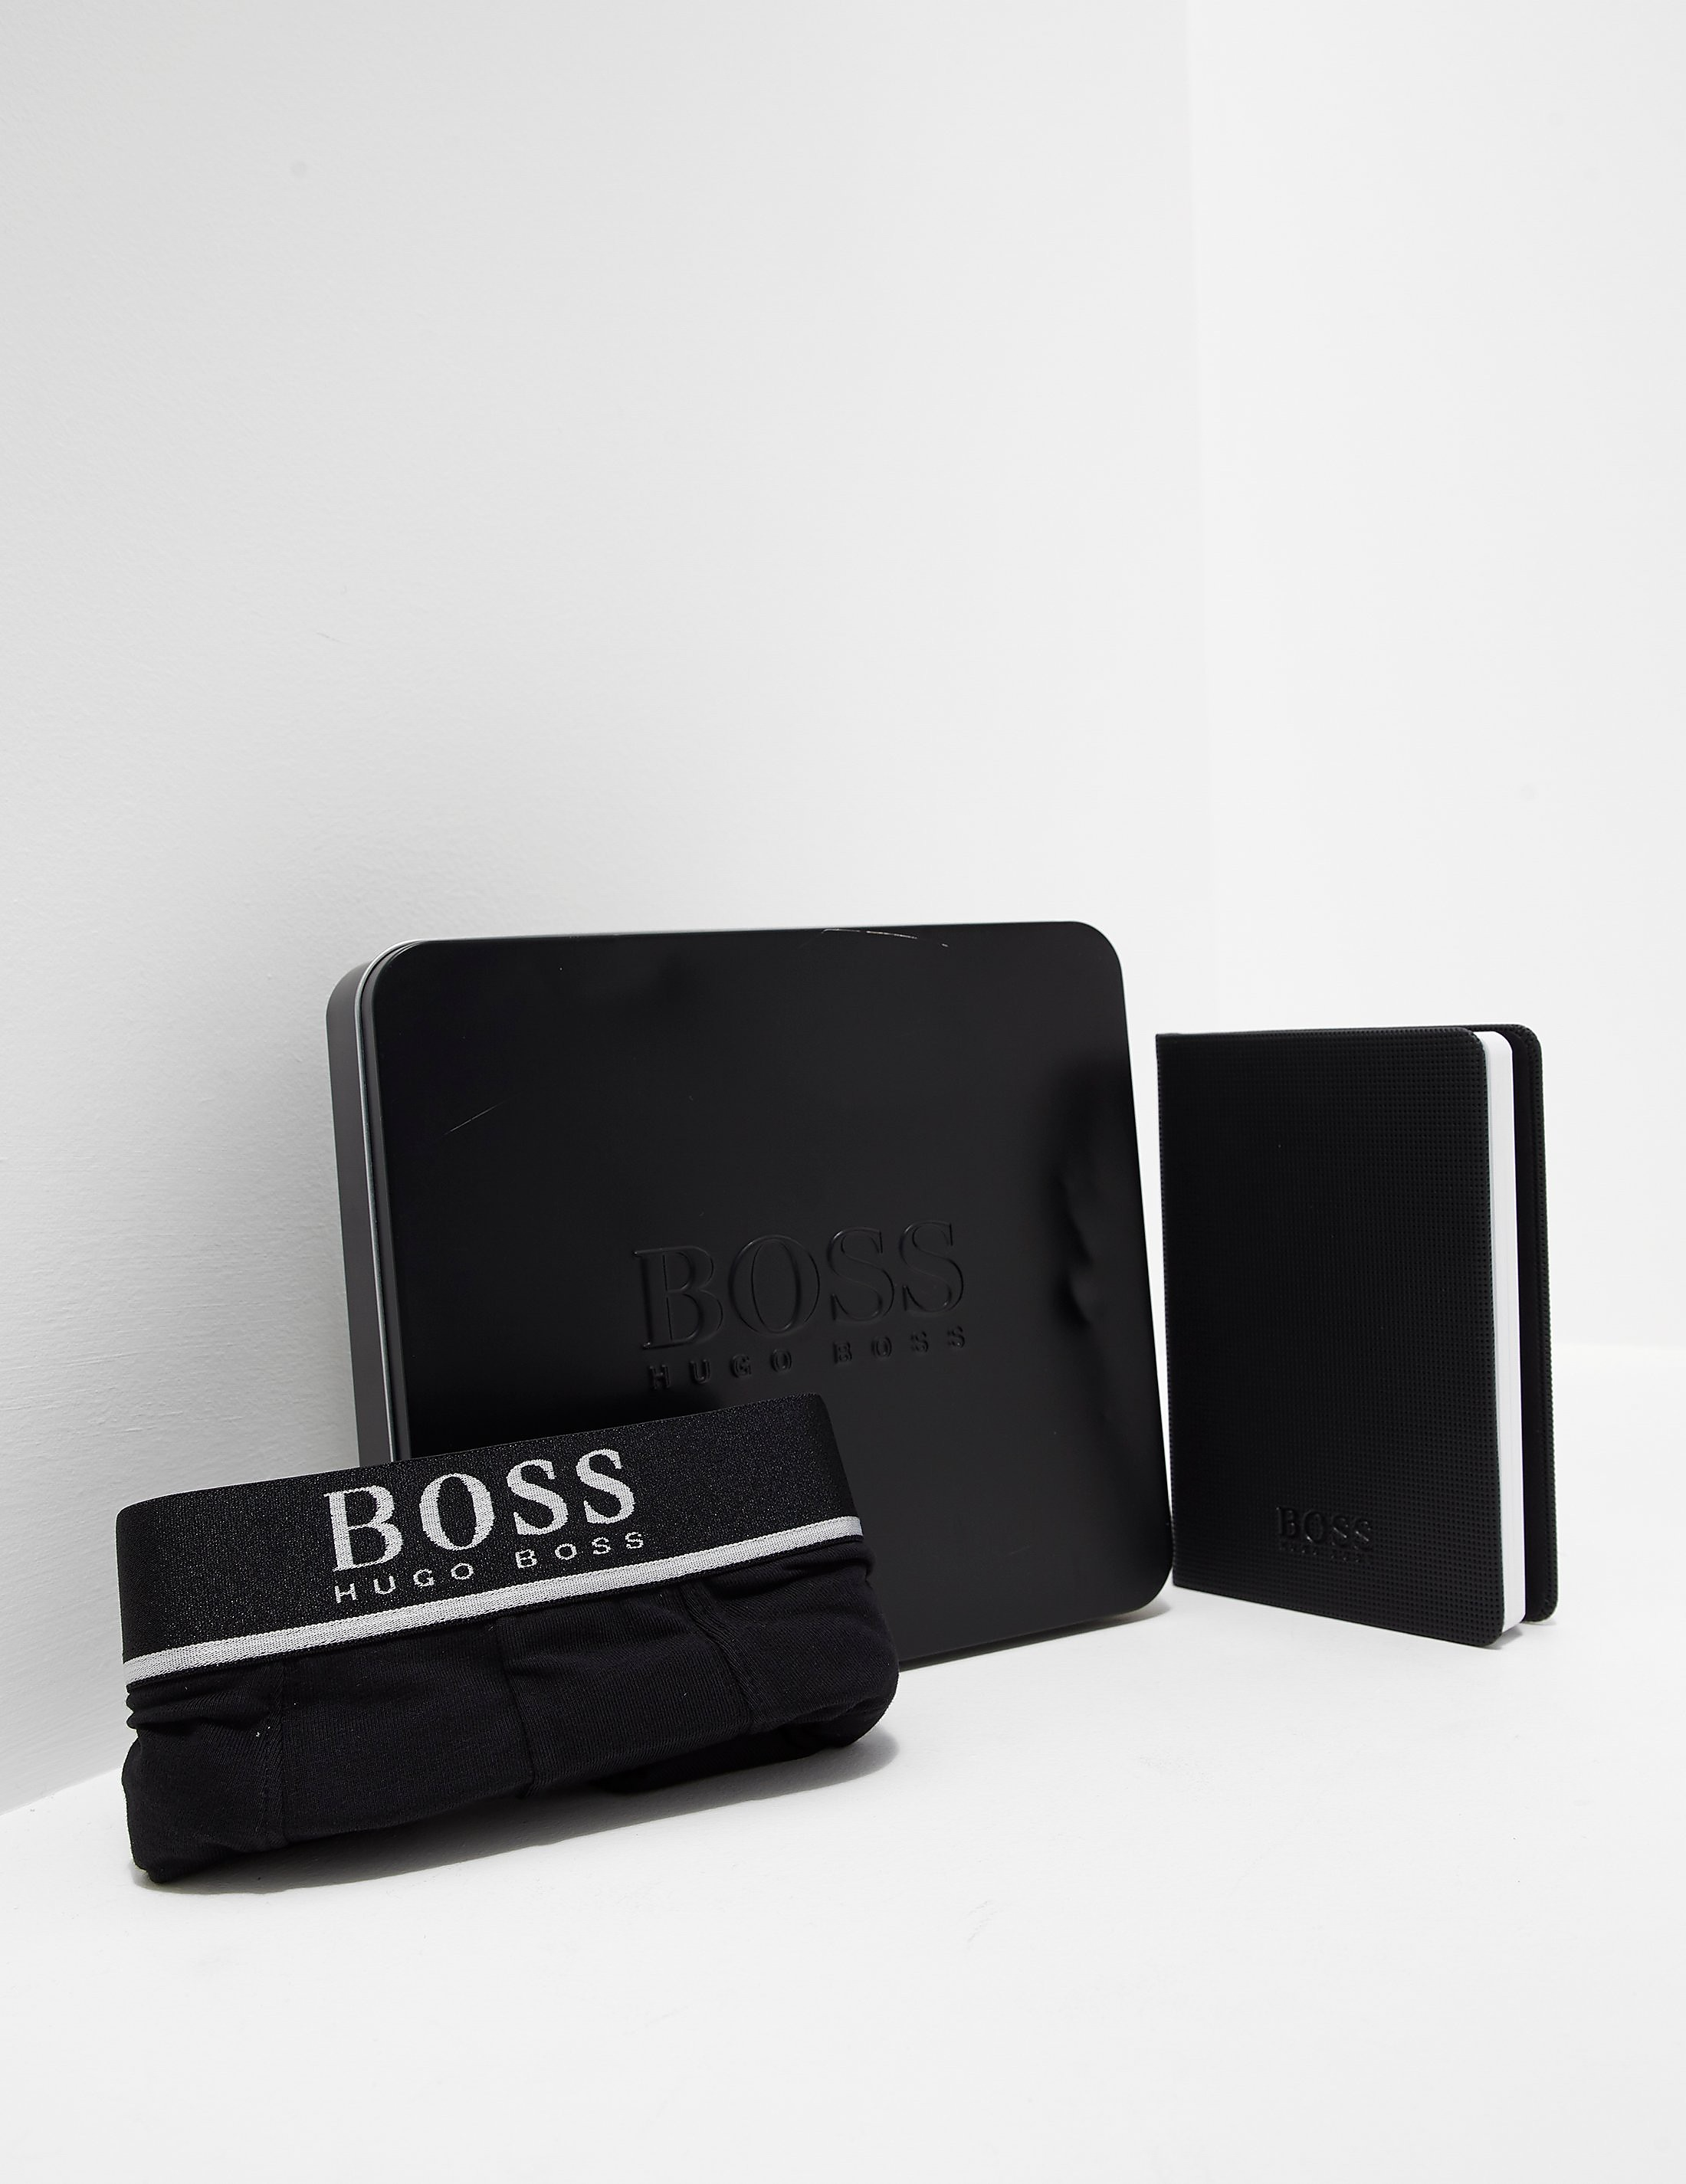 BOSS Boxer Shorts and Note Pad Gift Set